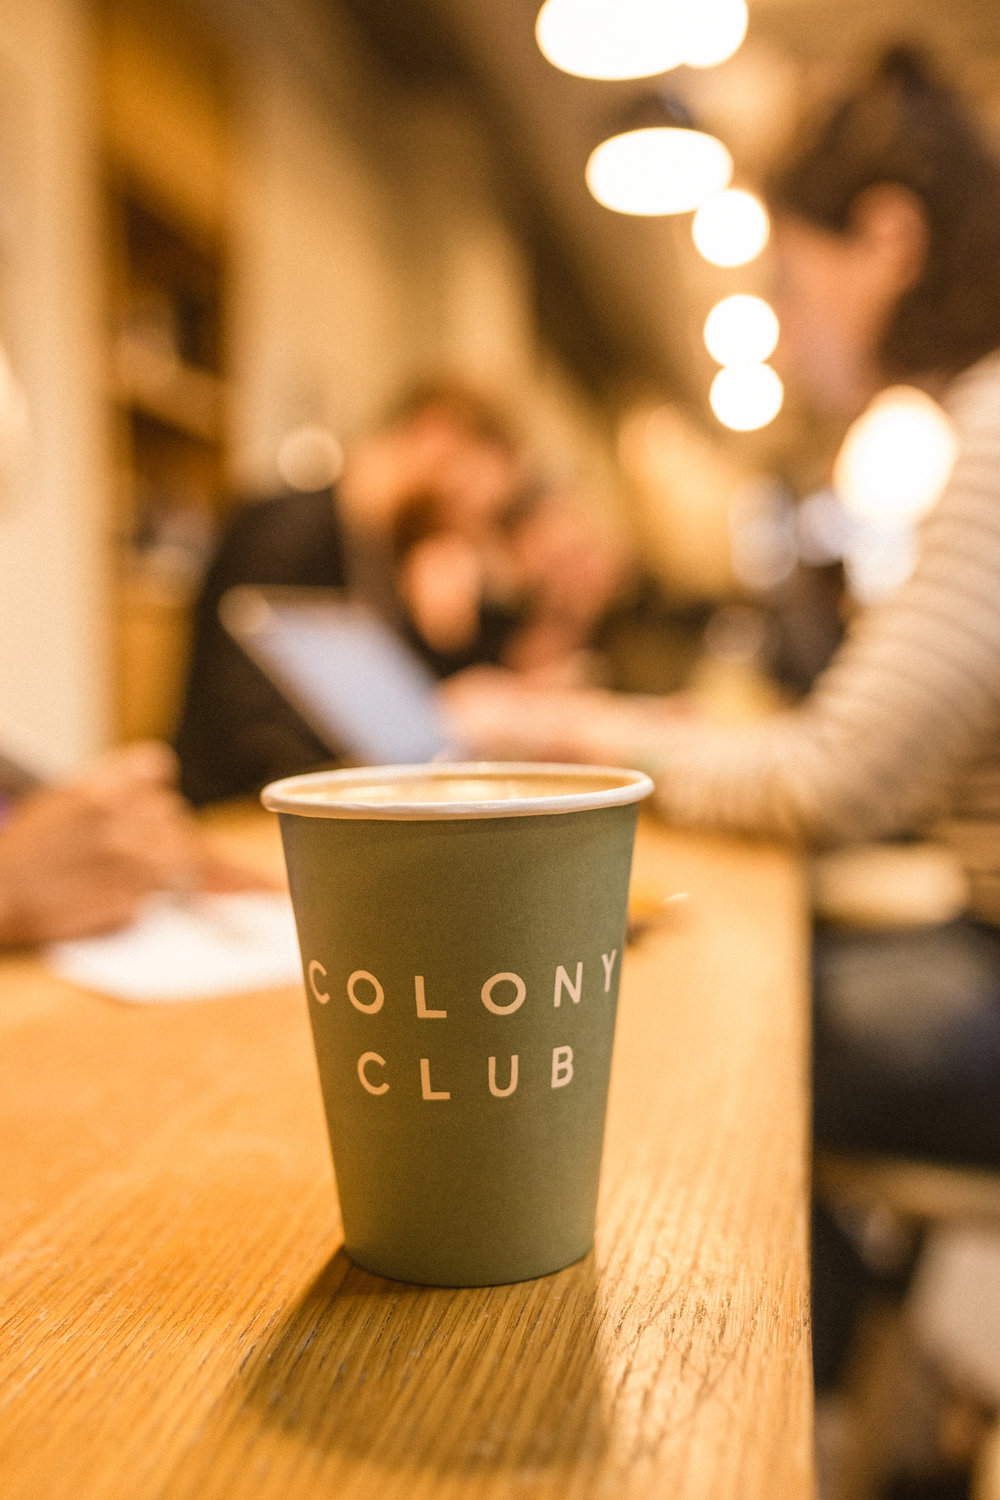 The Colony Club - Columbia Heights, DC